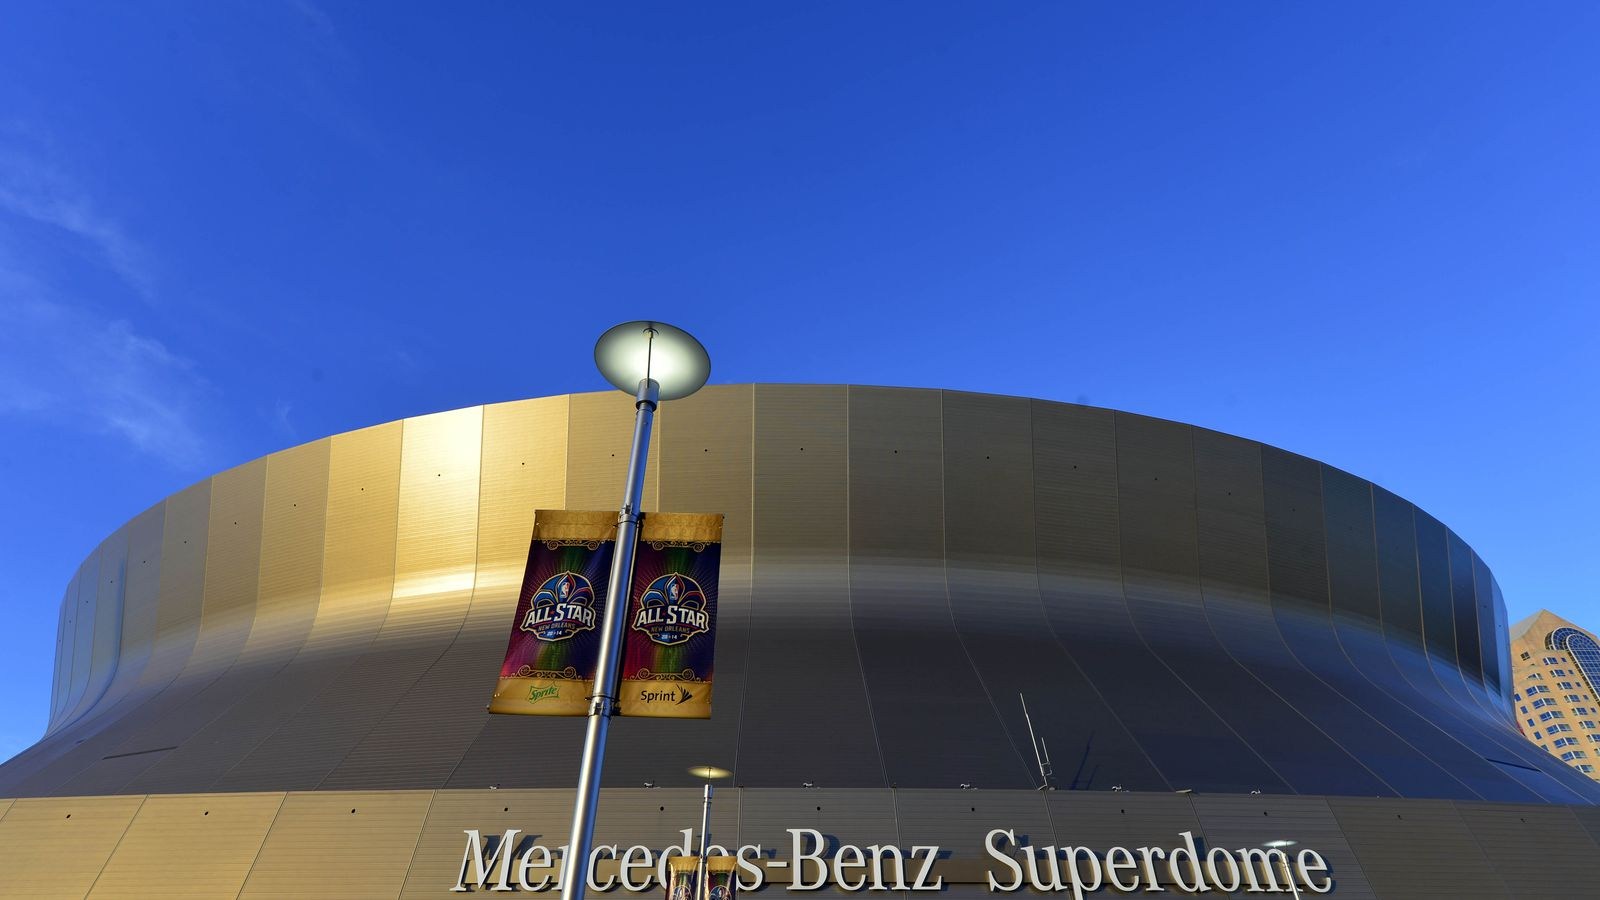 Saints news 8 21 15 mercedes benz to apply name to for Mercedes benz stadium application